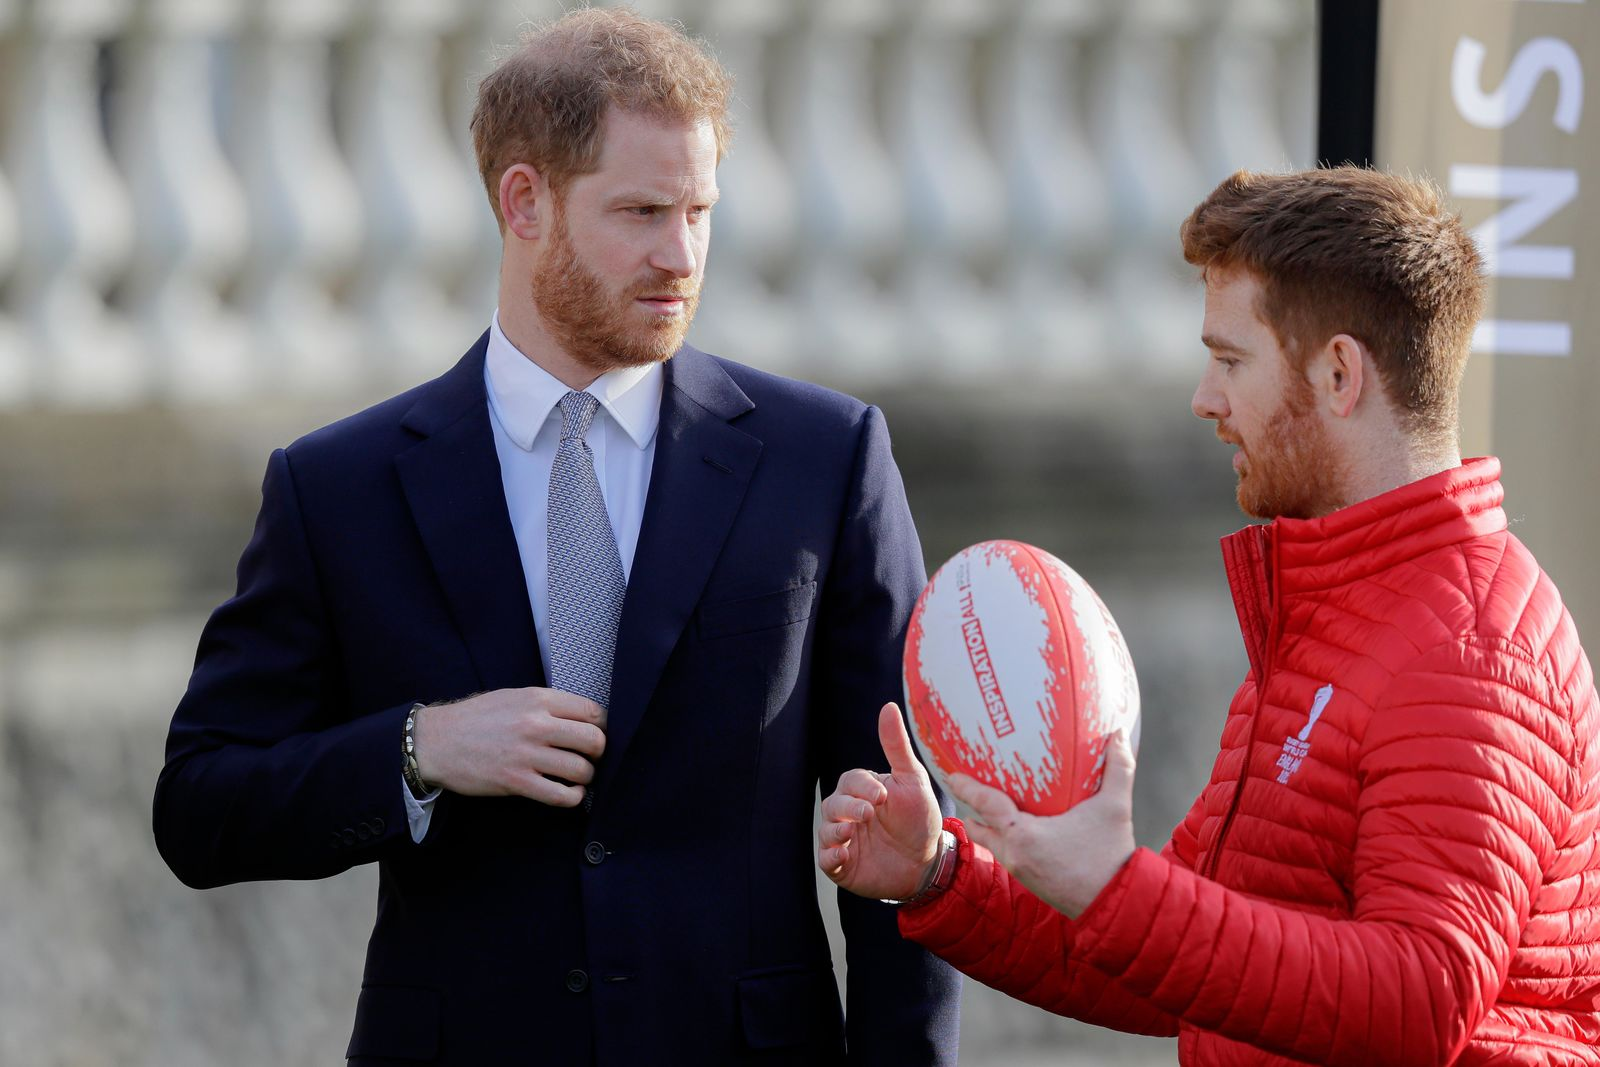 Britain's Prince Harry listens to Rugby League World Cup 2021 (RLWC2021) ambassador James Simpson in the gardens at Buckingham Palace in London, Thursday, Jan. 16, 2020 (AP Photo/Kirsty Wigglesworth)